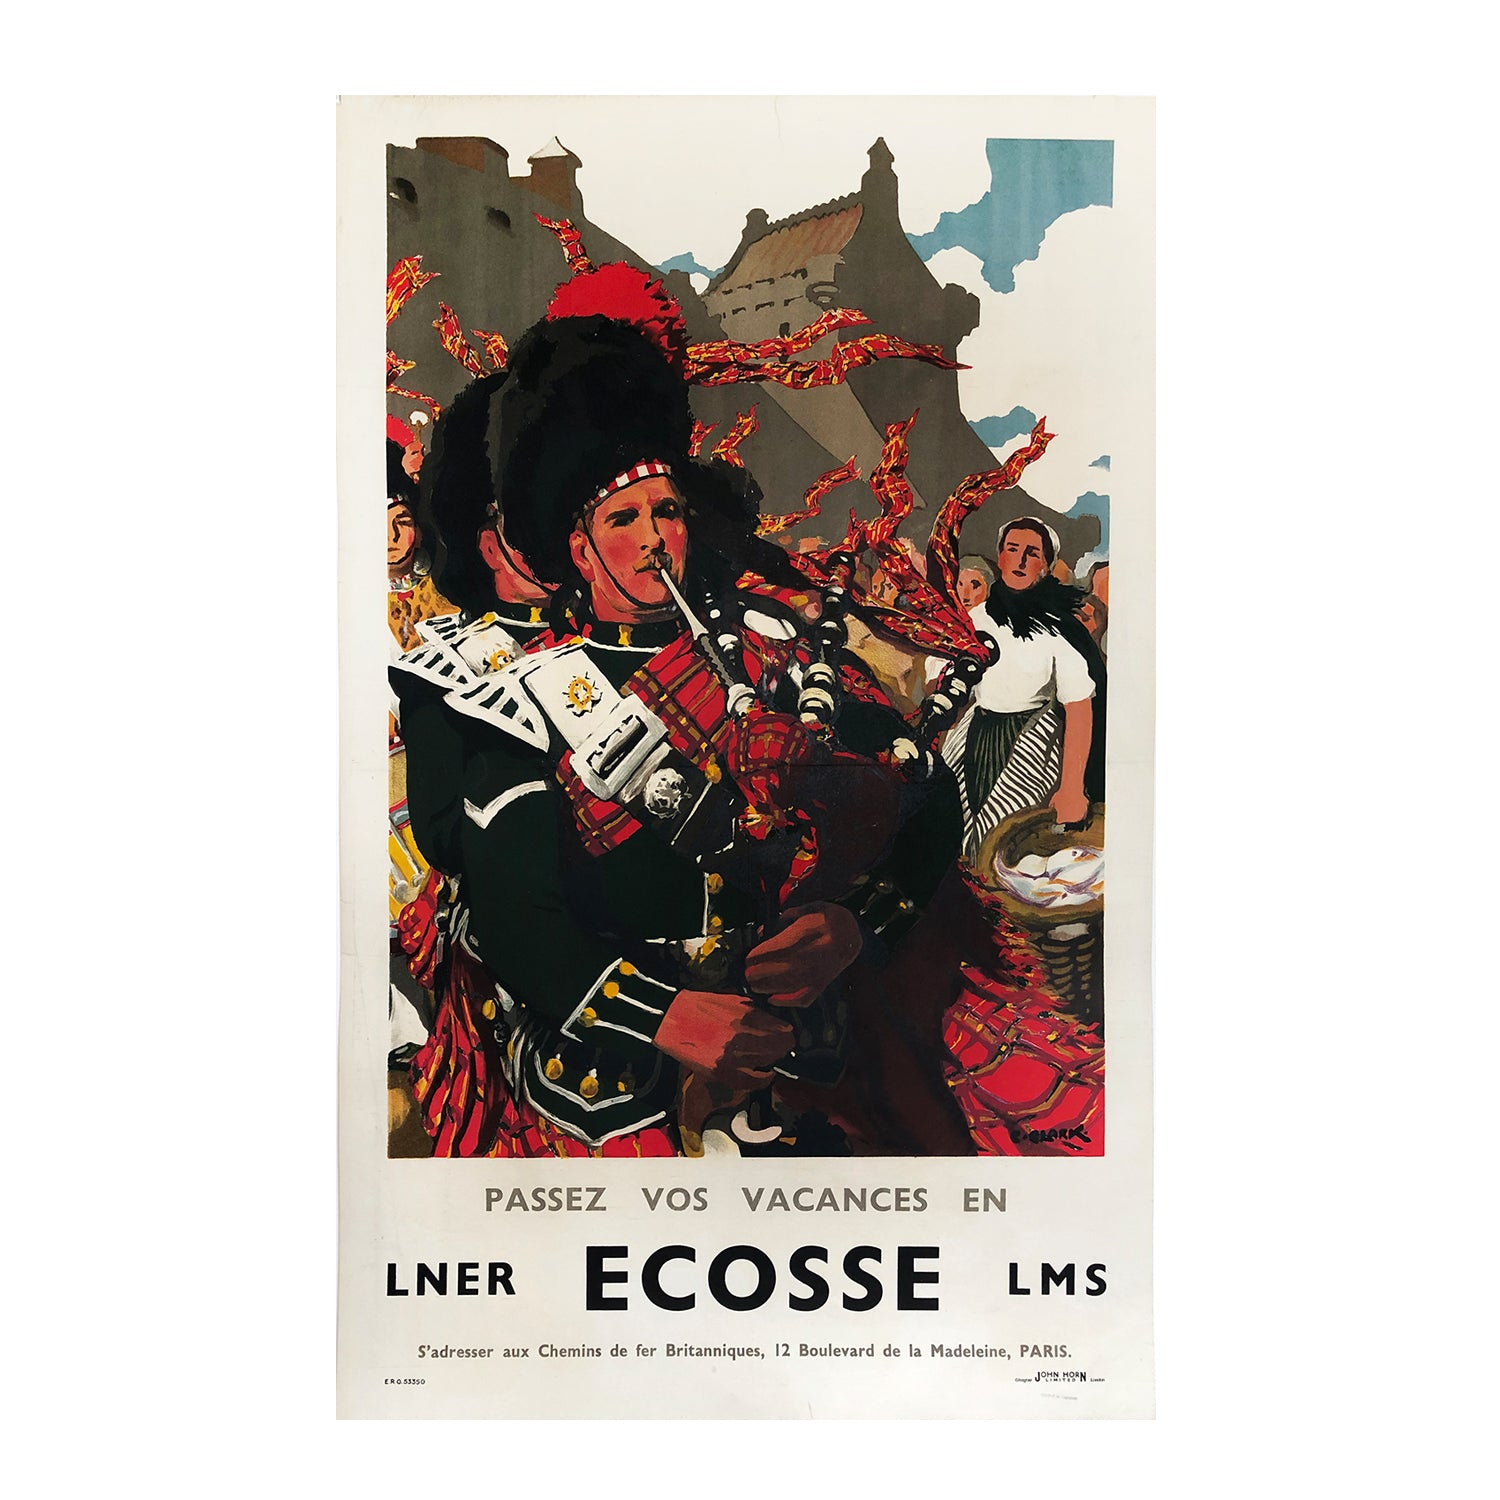 An original, vibrant, 1930s Scottish railway poster printed for the French market, depicting Highland pipers with Edinburgh Castle in the background